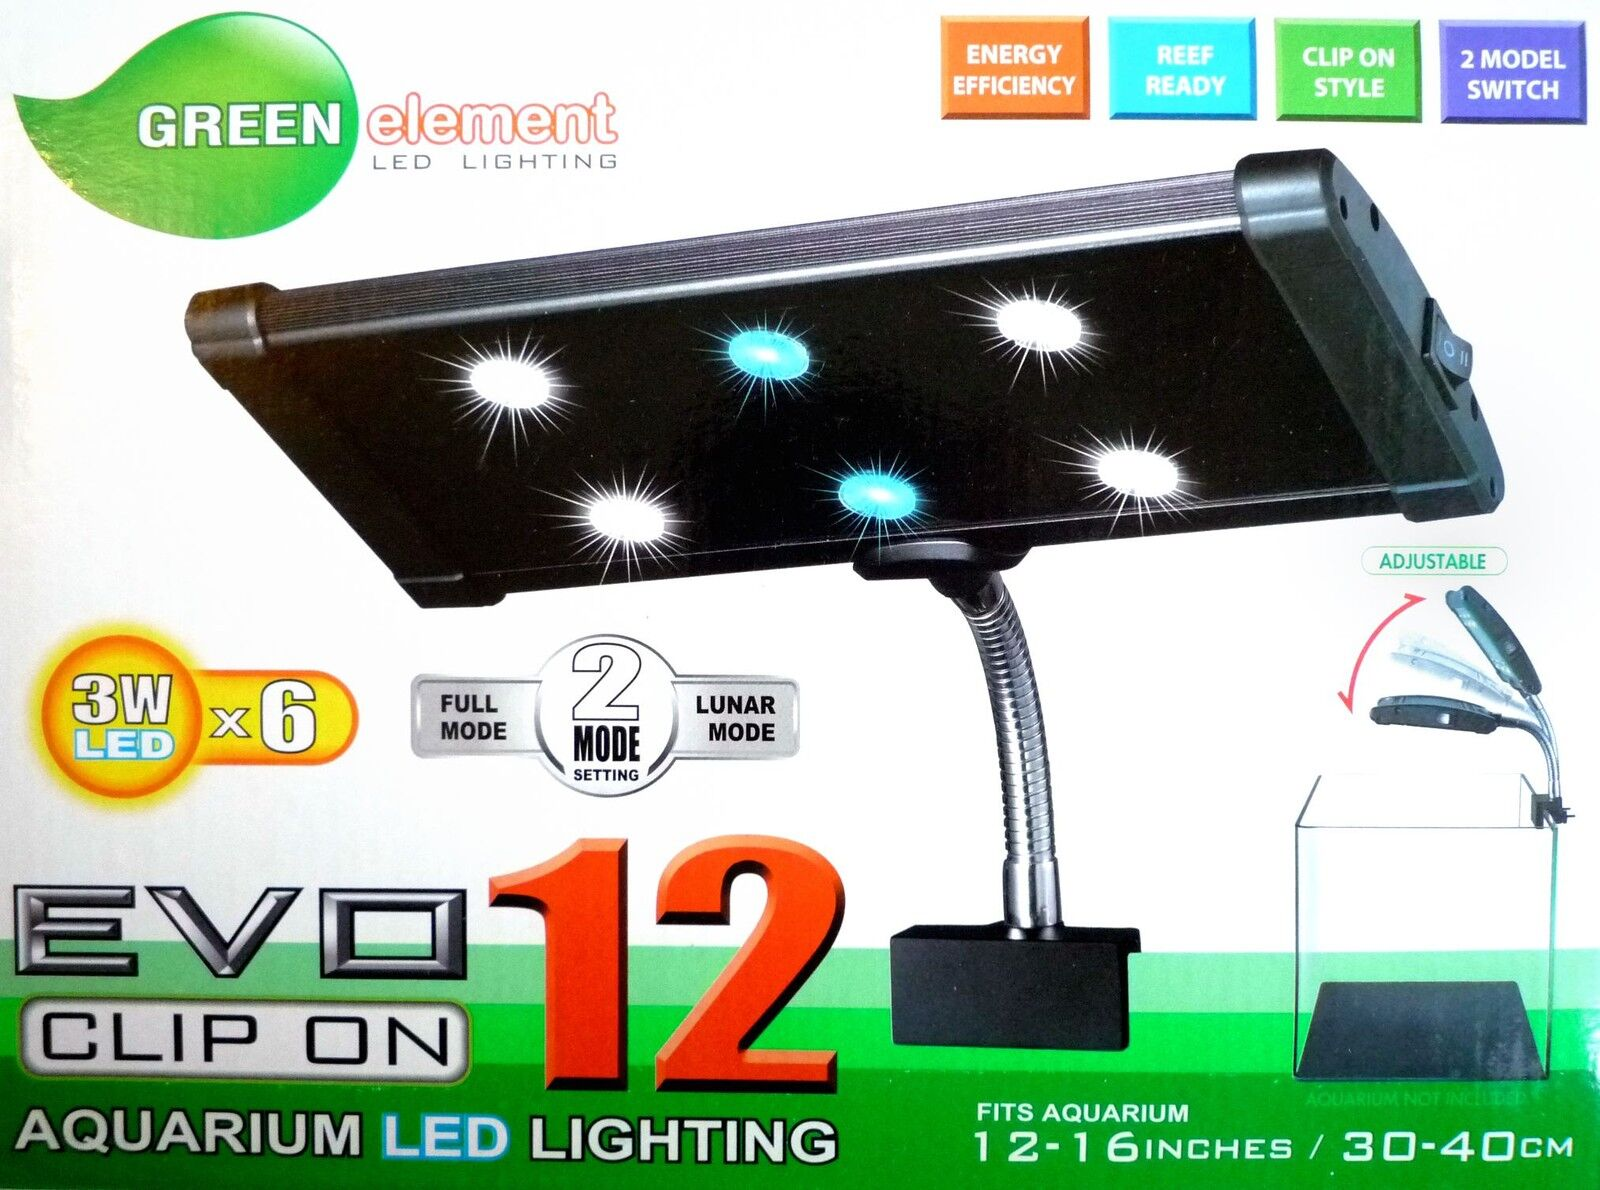 Green element LED light EVO clip clamp hang on 3W x6 Reef Coral planted aquarium